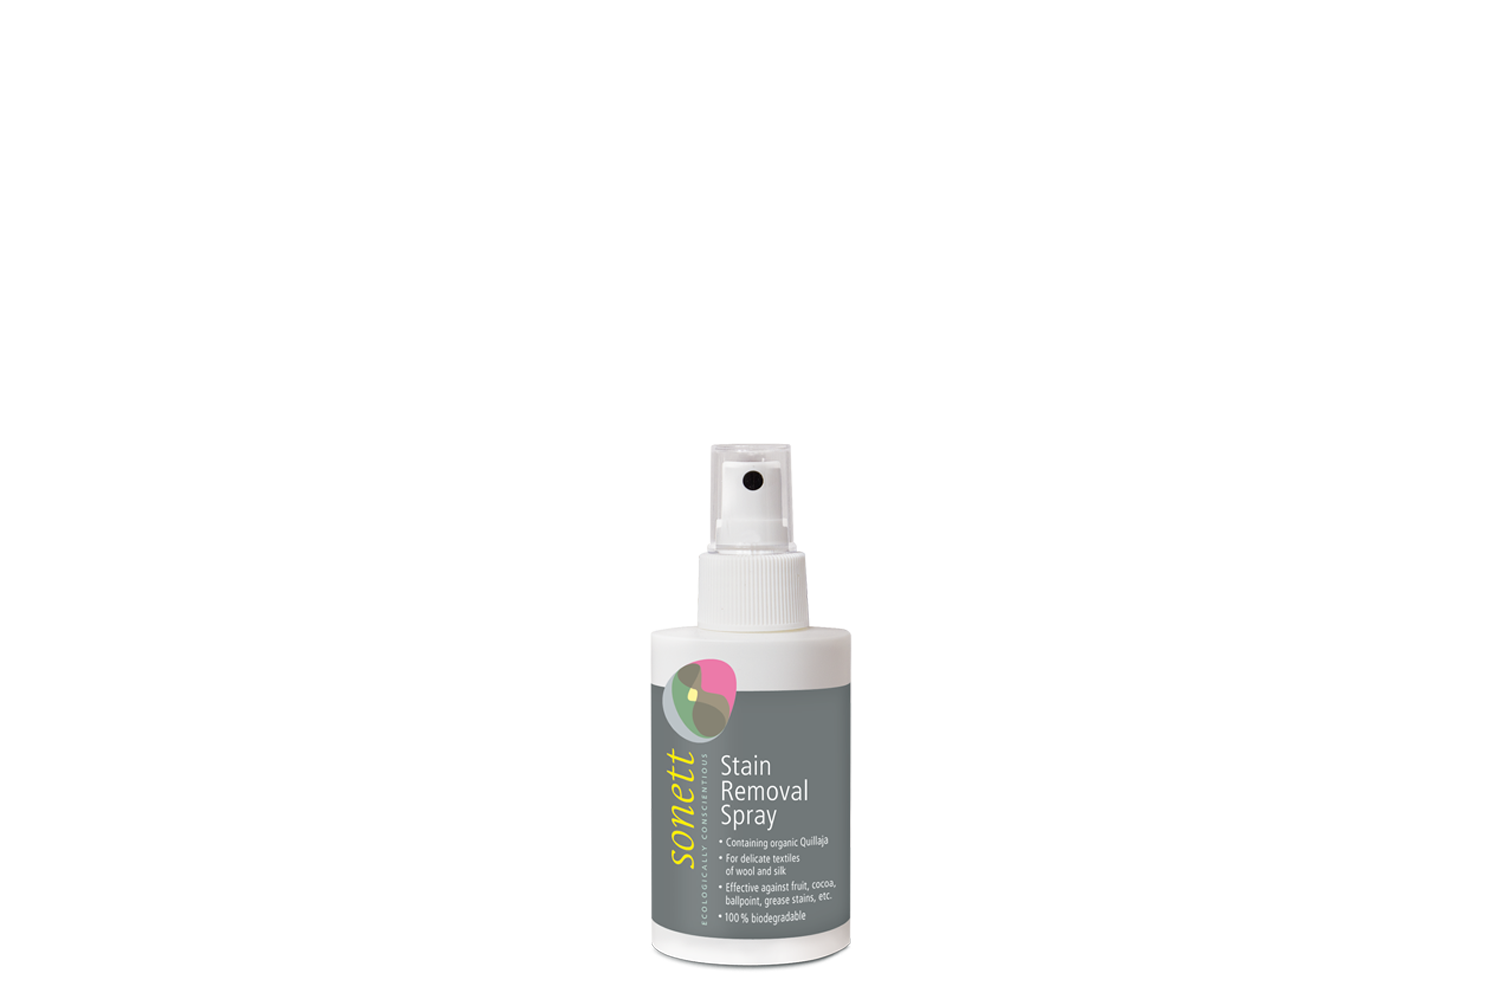 Grease stain png. Removal spray ml sonett